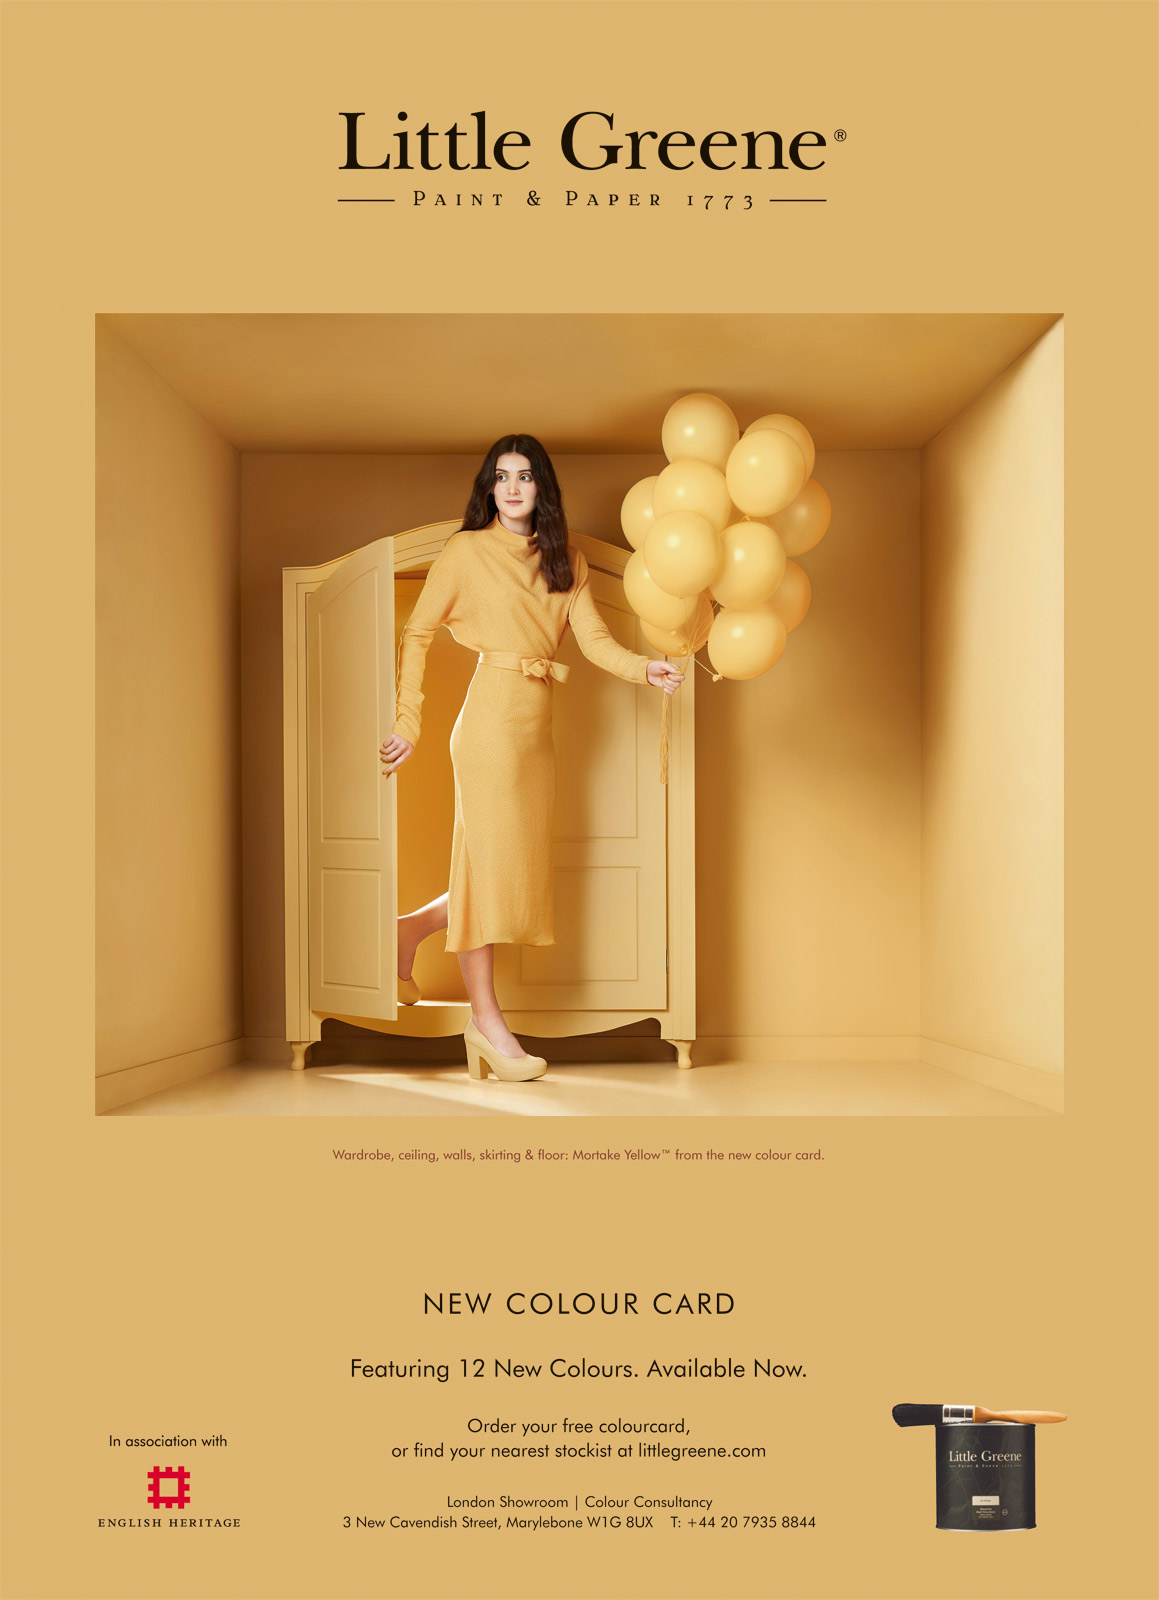 Model holding yellow balloons for a paint advert